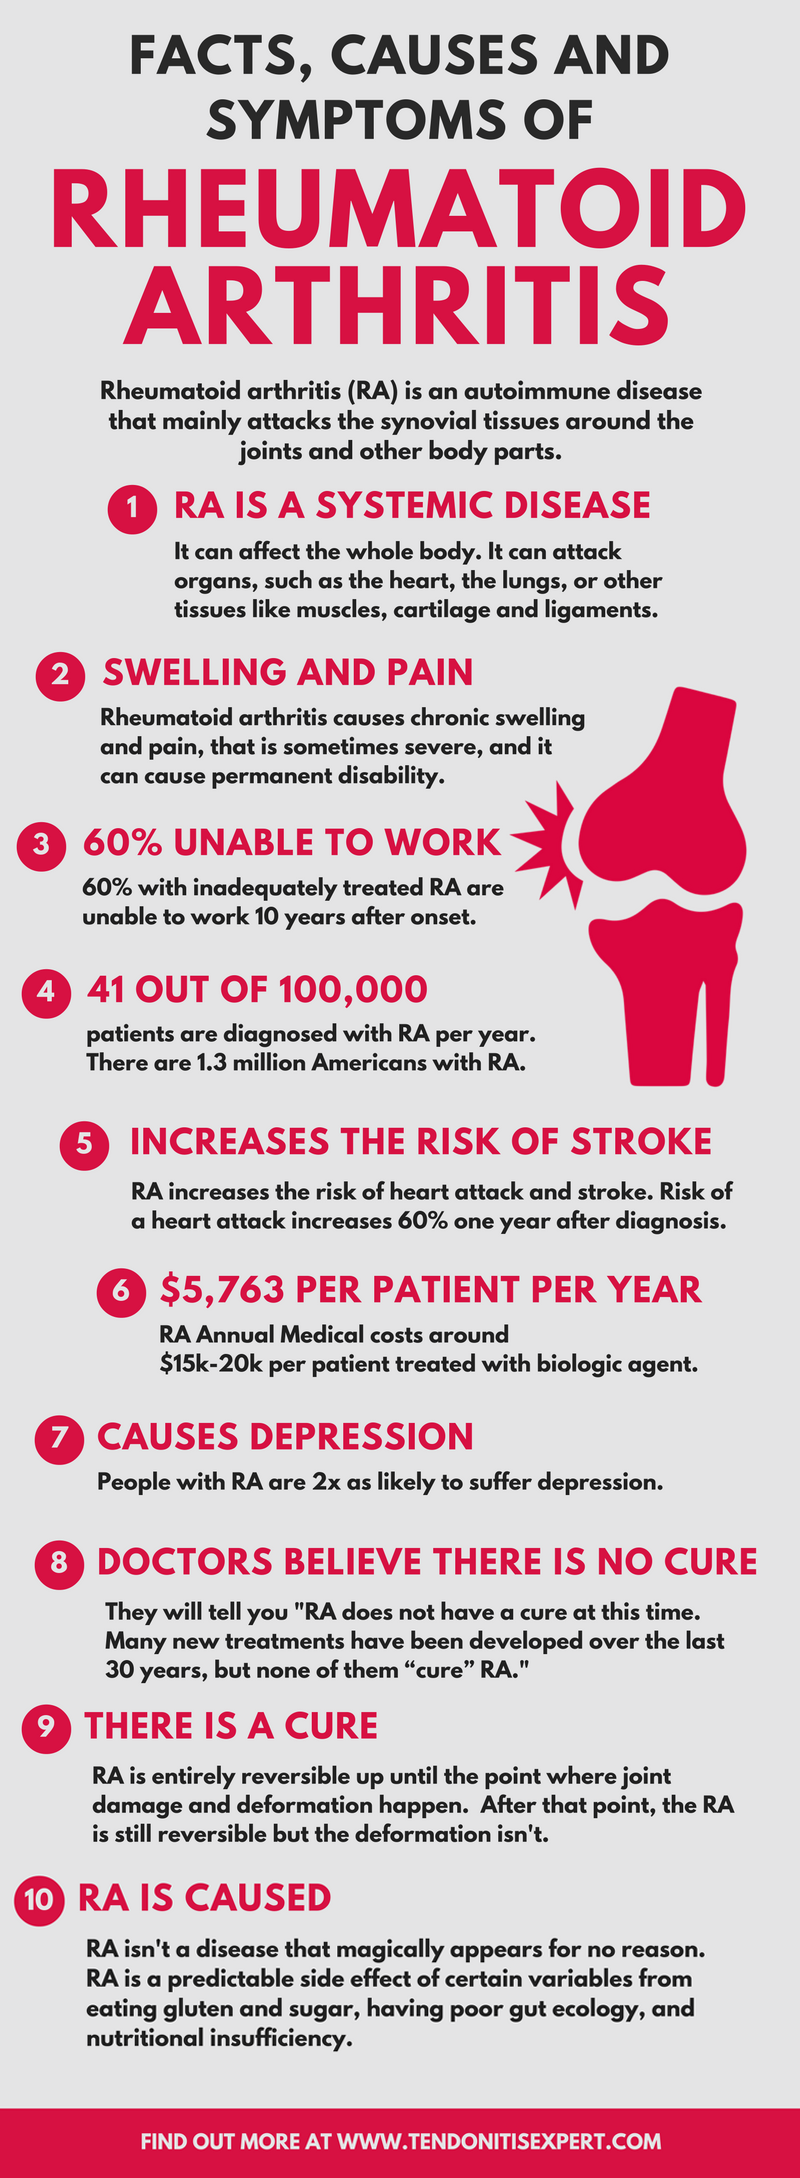 facts-cause-symptoms-of-rheumatoir-arthritis-infographic-plaza